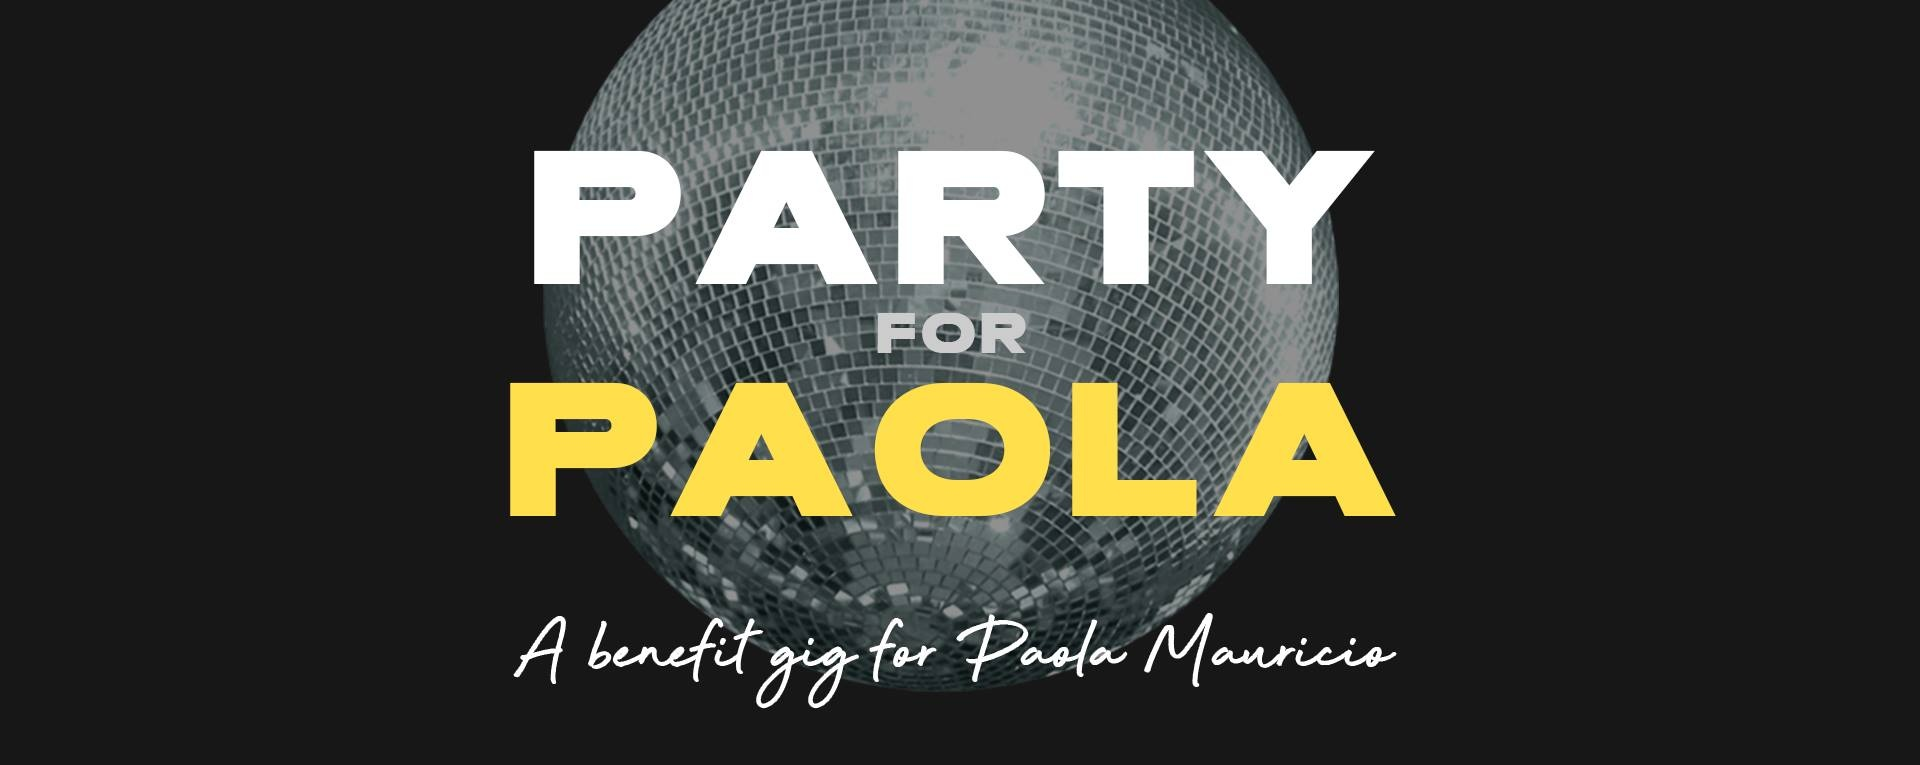 Party for Paola: A Benefit Gig